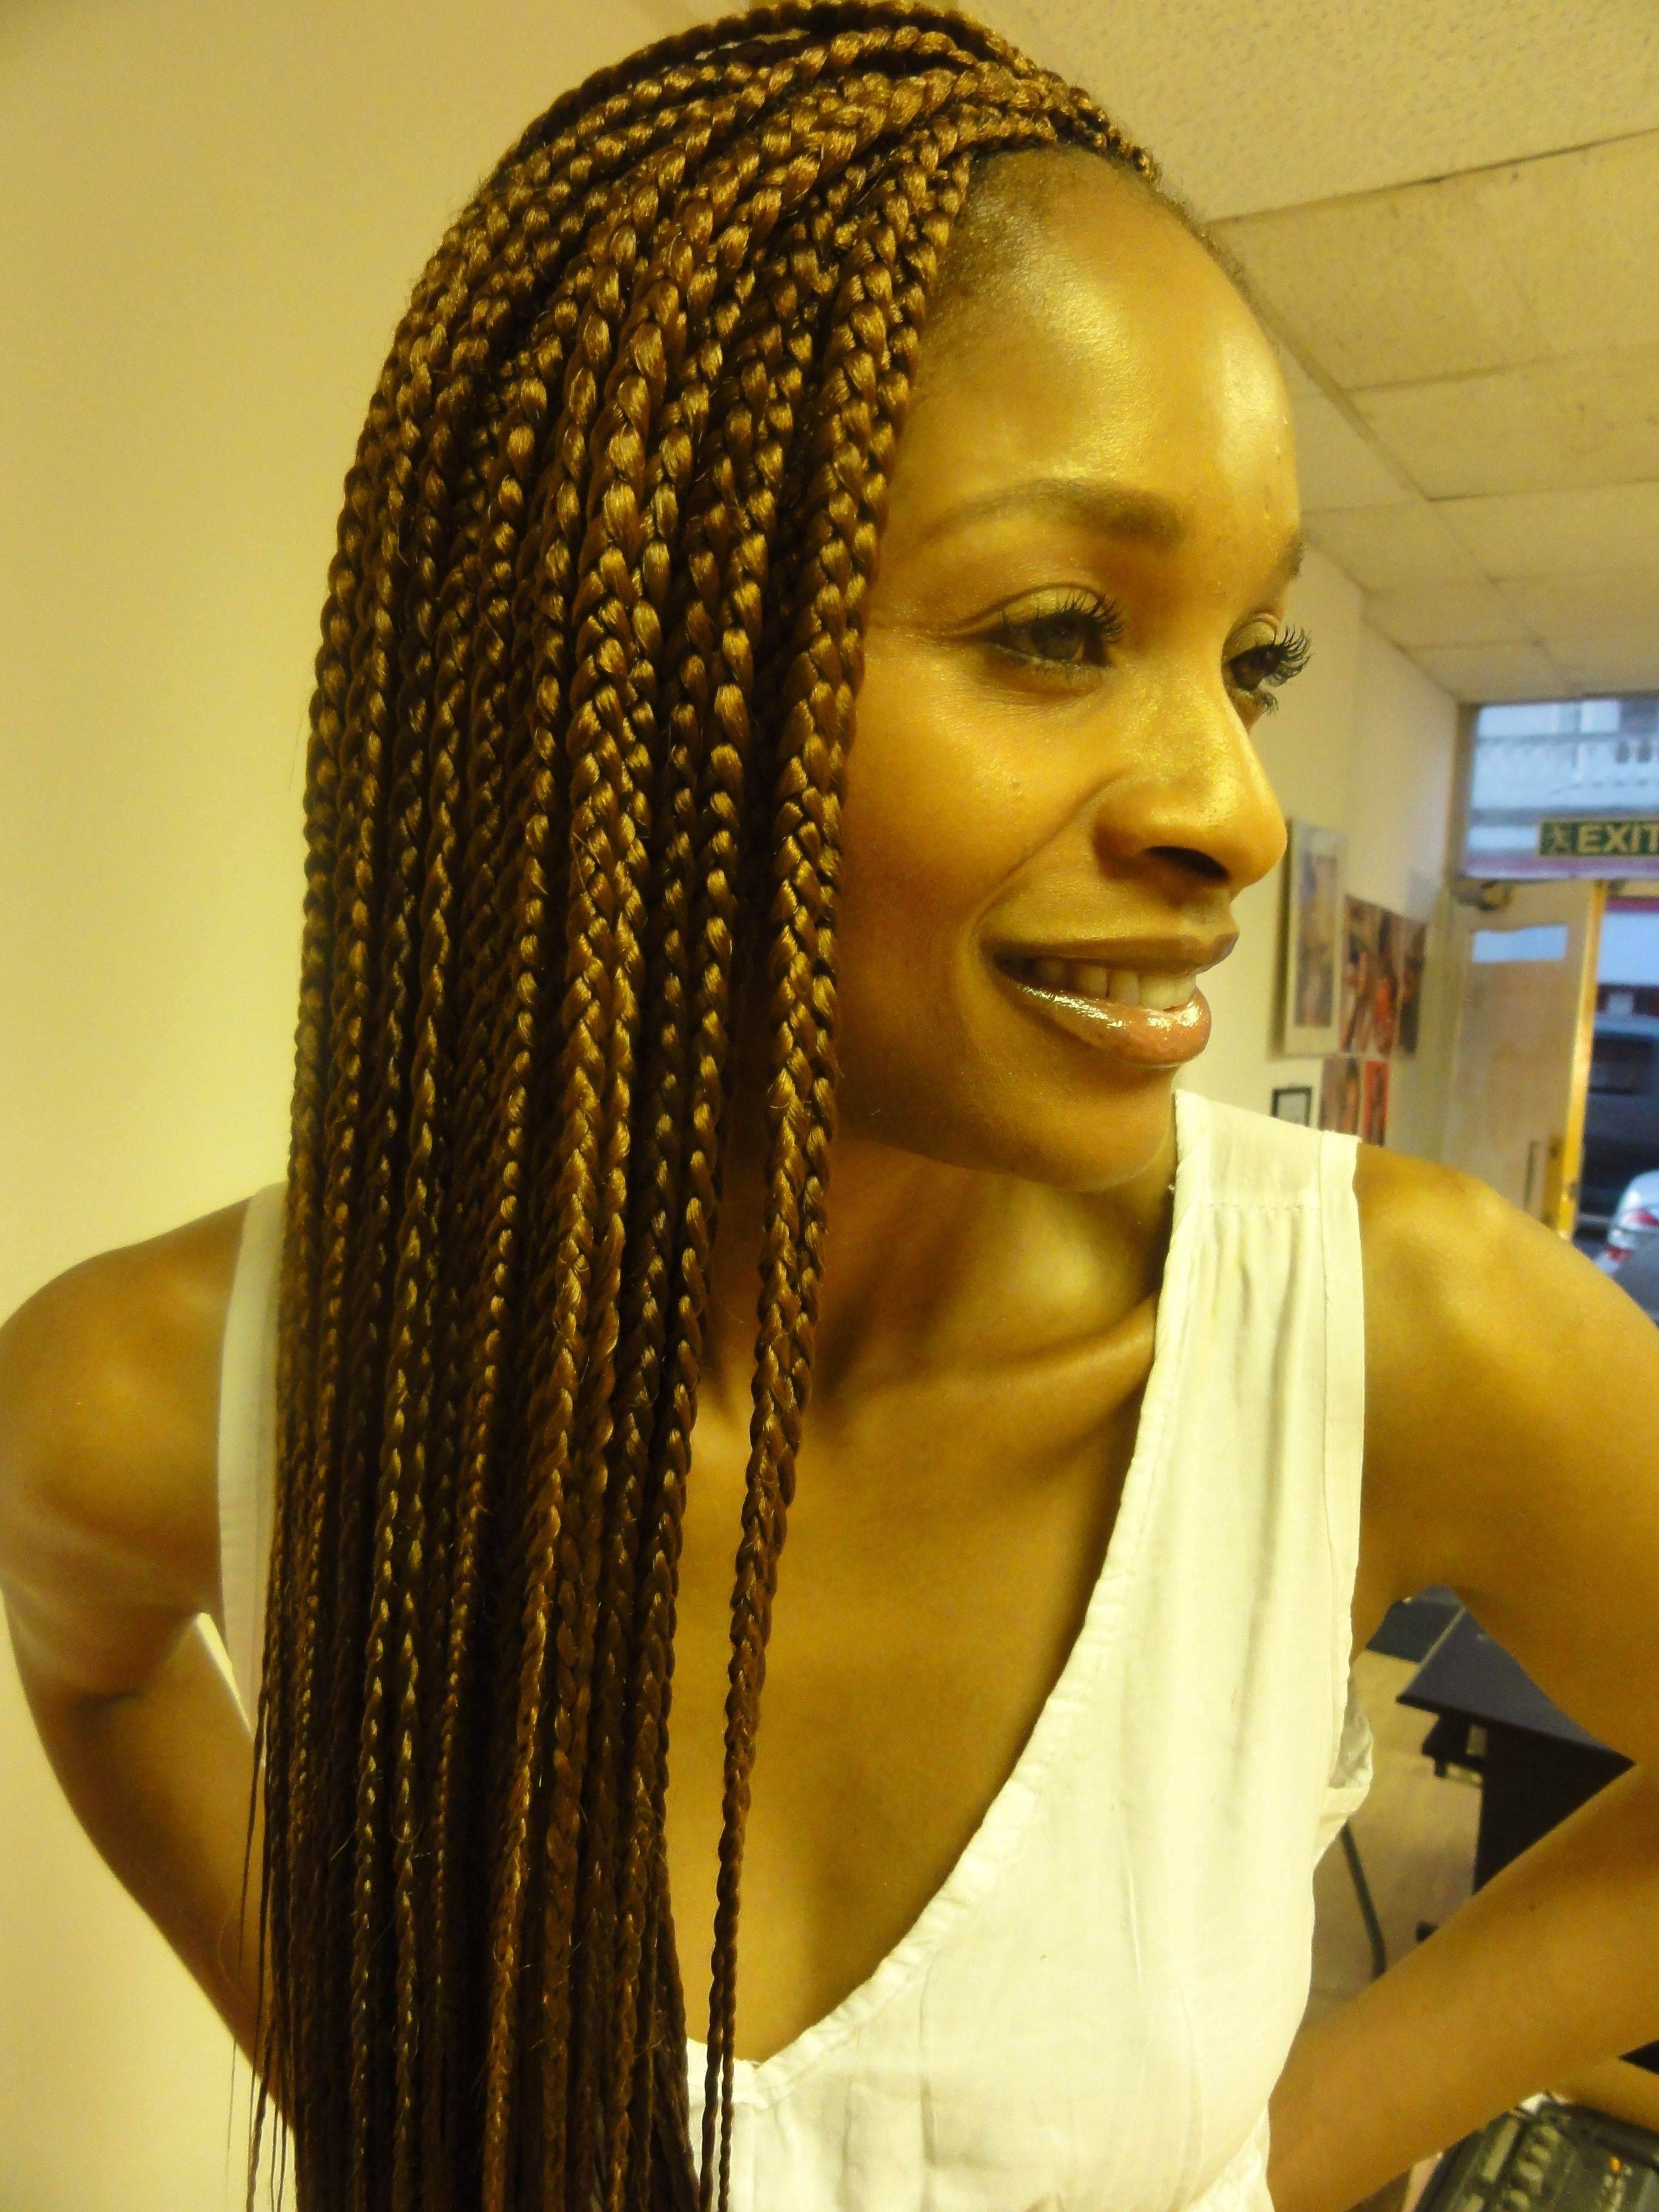 Fabulous 1000 Images About Hair On Pinterest Box Braids Braids And Hairstyle Inspiration Daily Dogsangcom